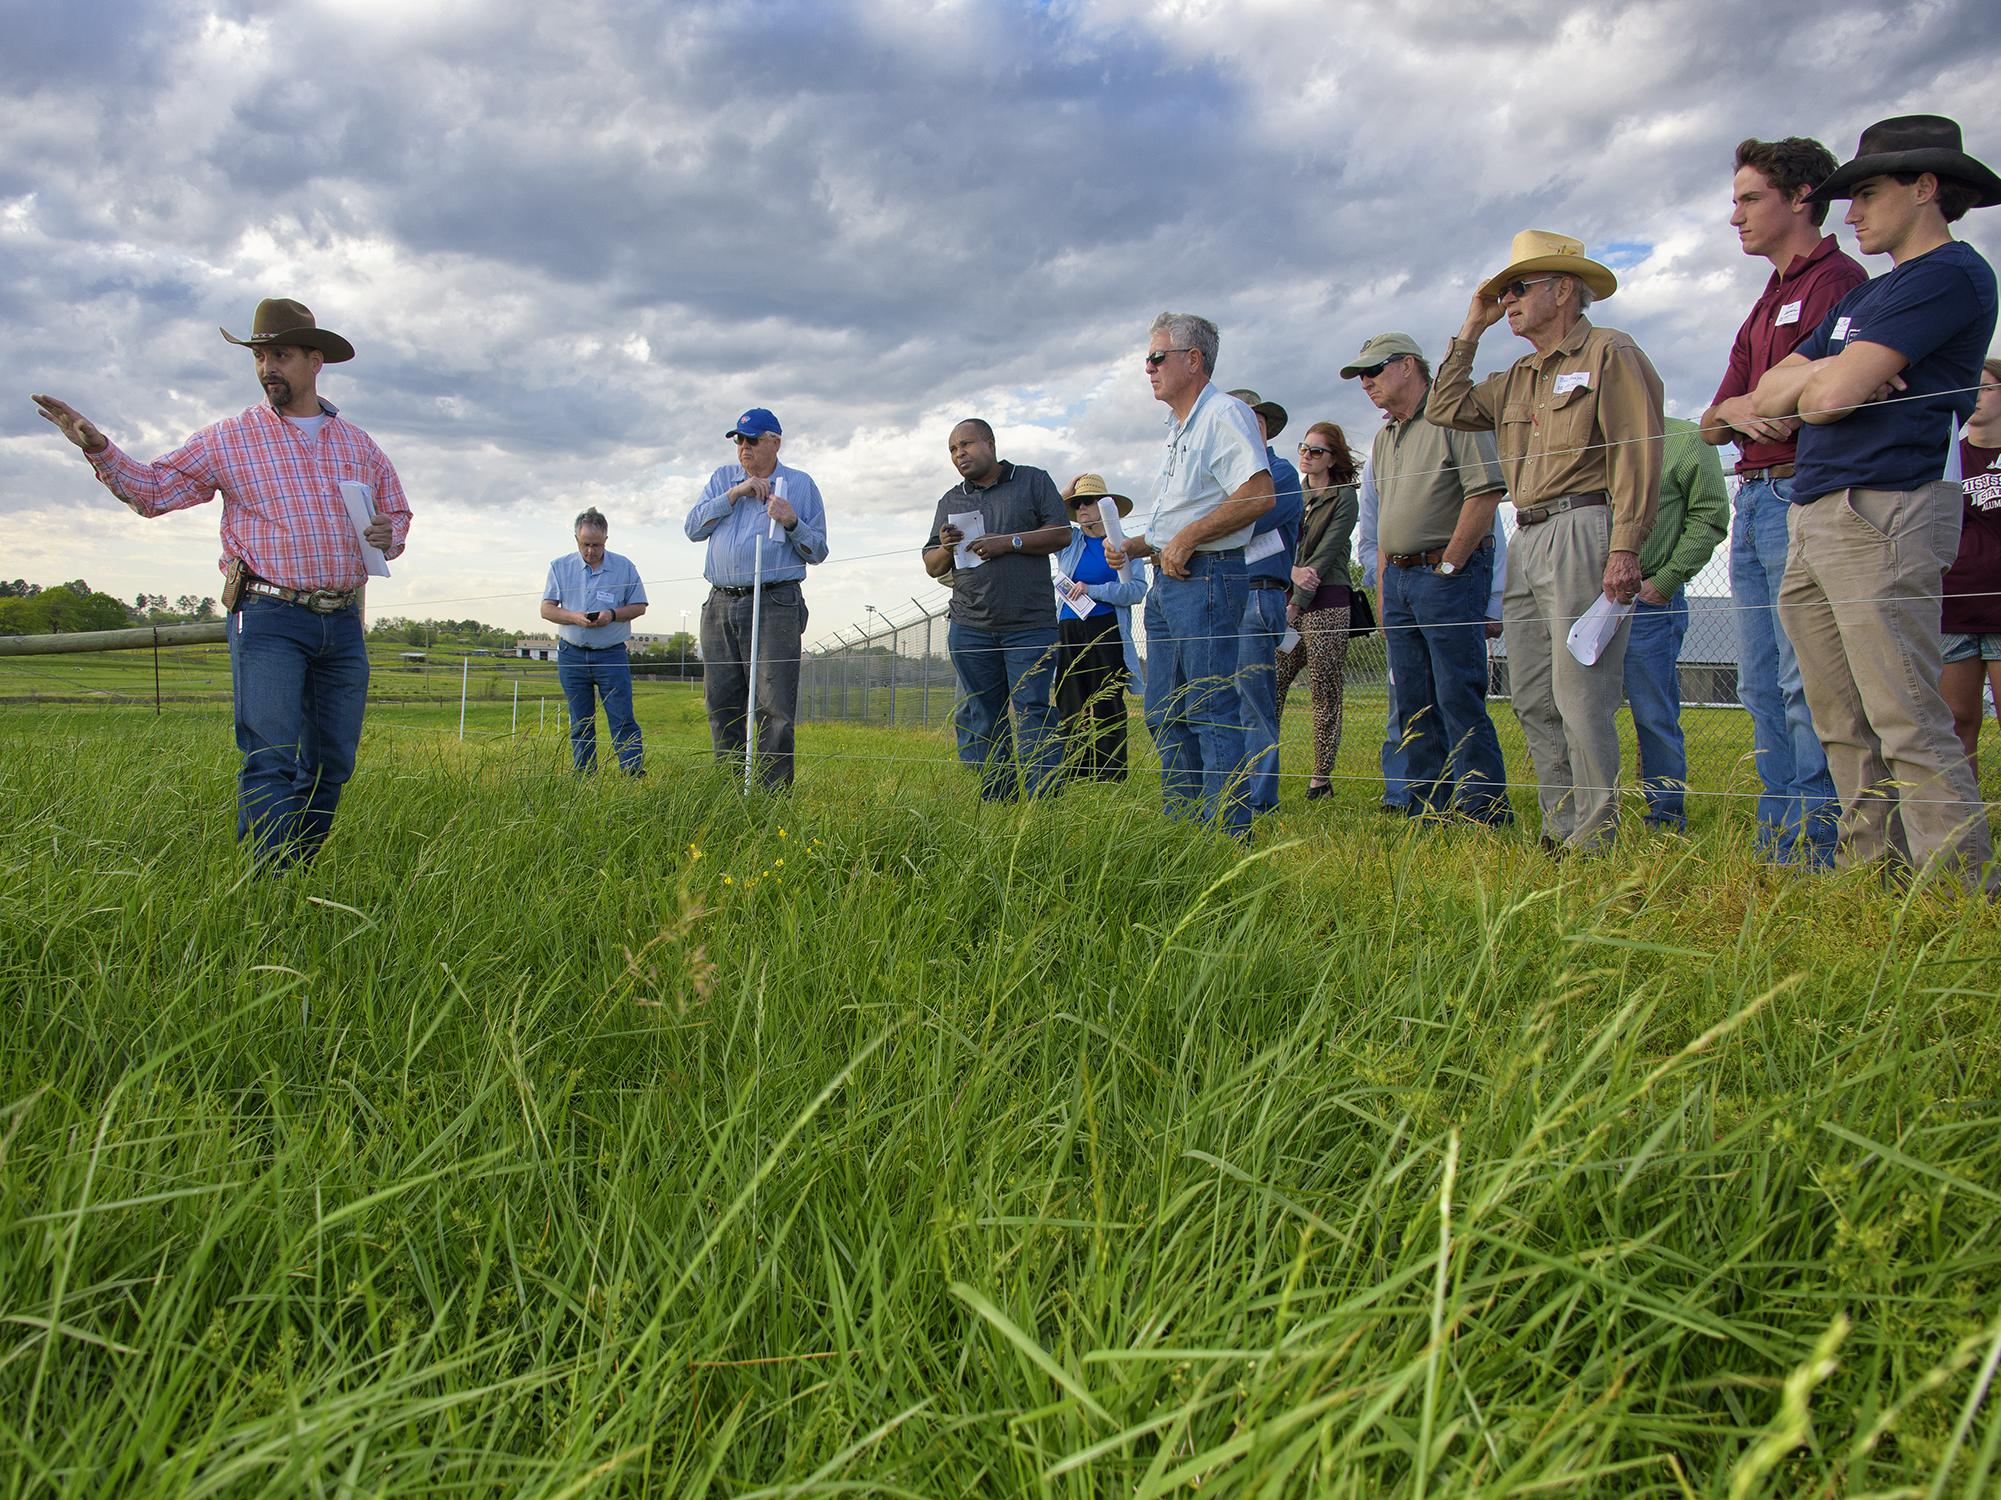 Rocky Lemus (left), forage specialist with the Mississippi State University Extension Service, explains successes and challenges with fescue growing at the H.H. Leveck Animal Research Center. Lemus led tours during a Forage Field Day near Starkville, Mississippi, on April 7, 2016. (Photo by MSU Extension Service/Kevin Hudson)